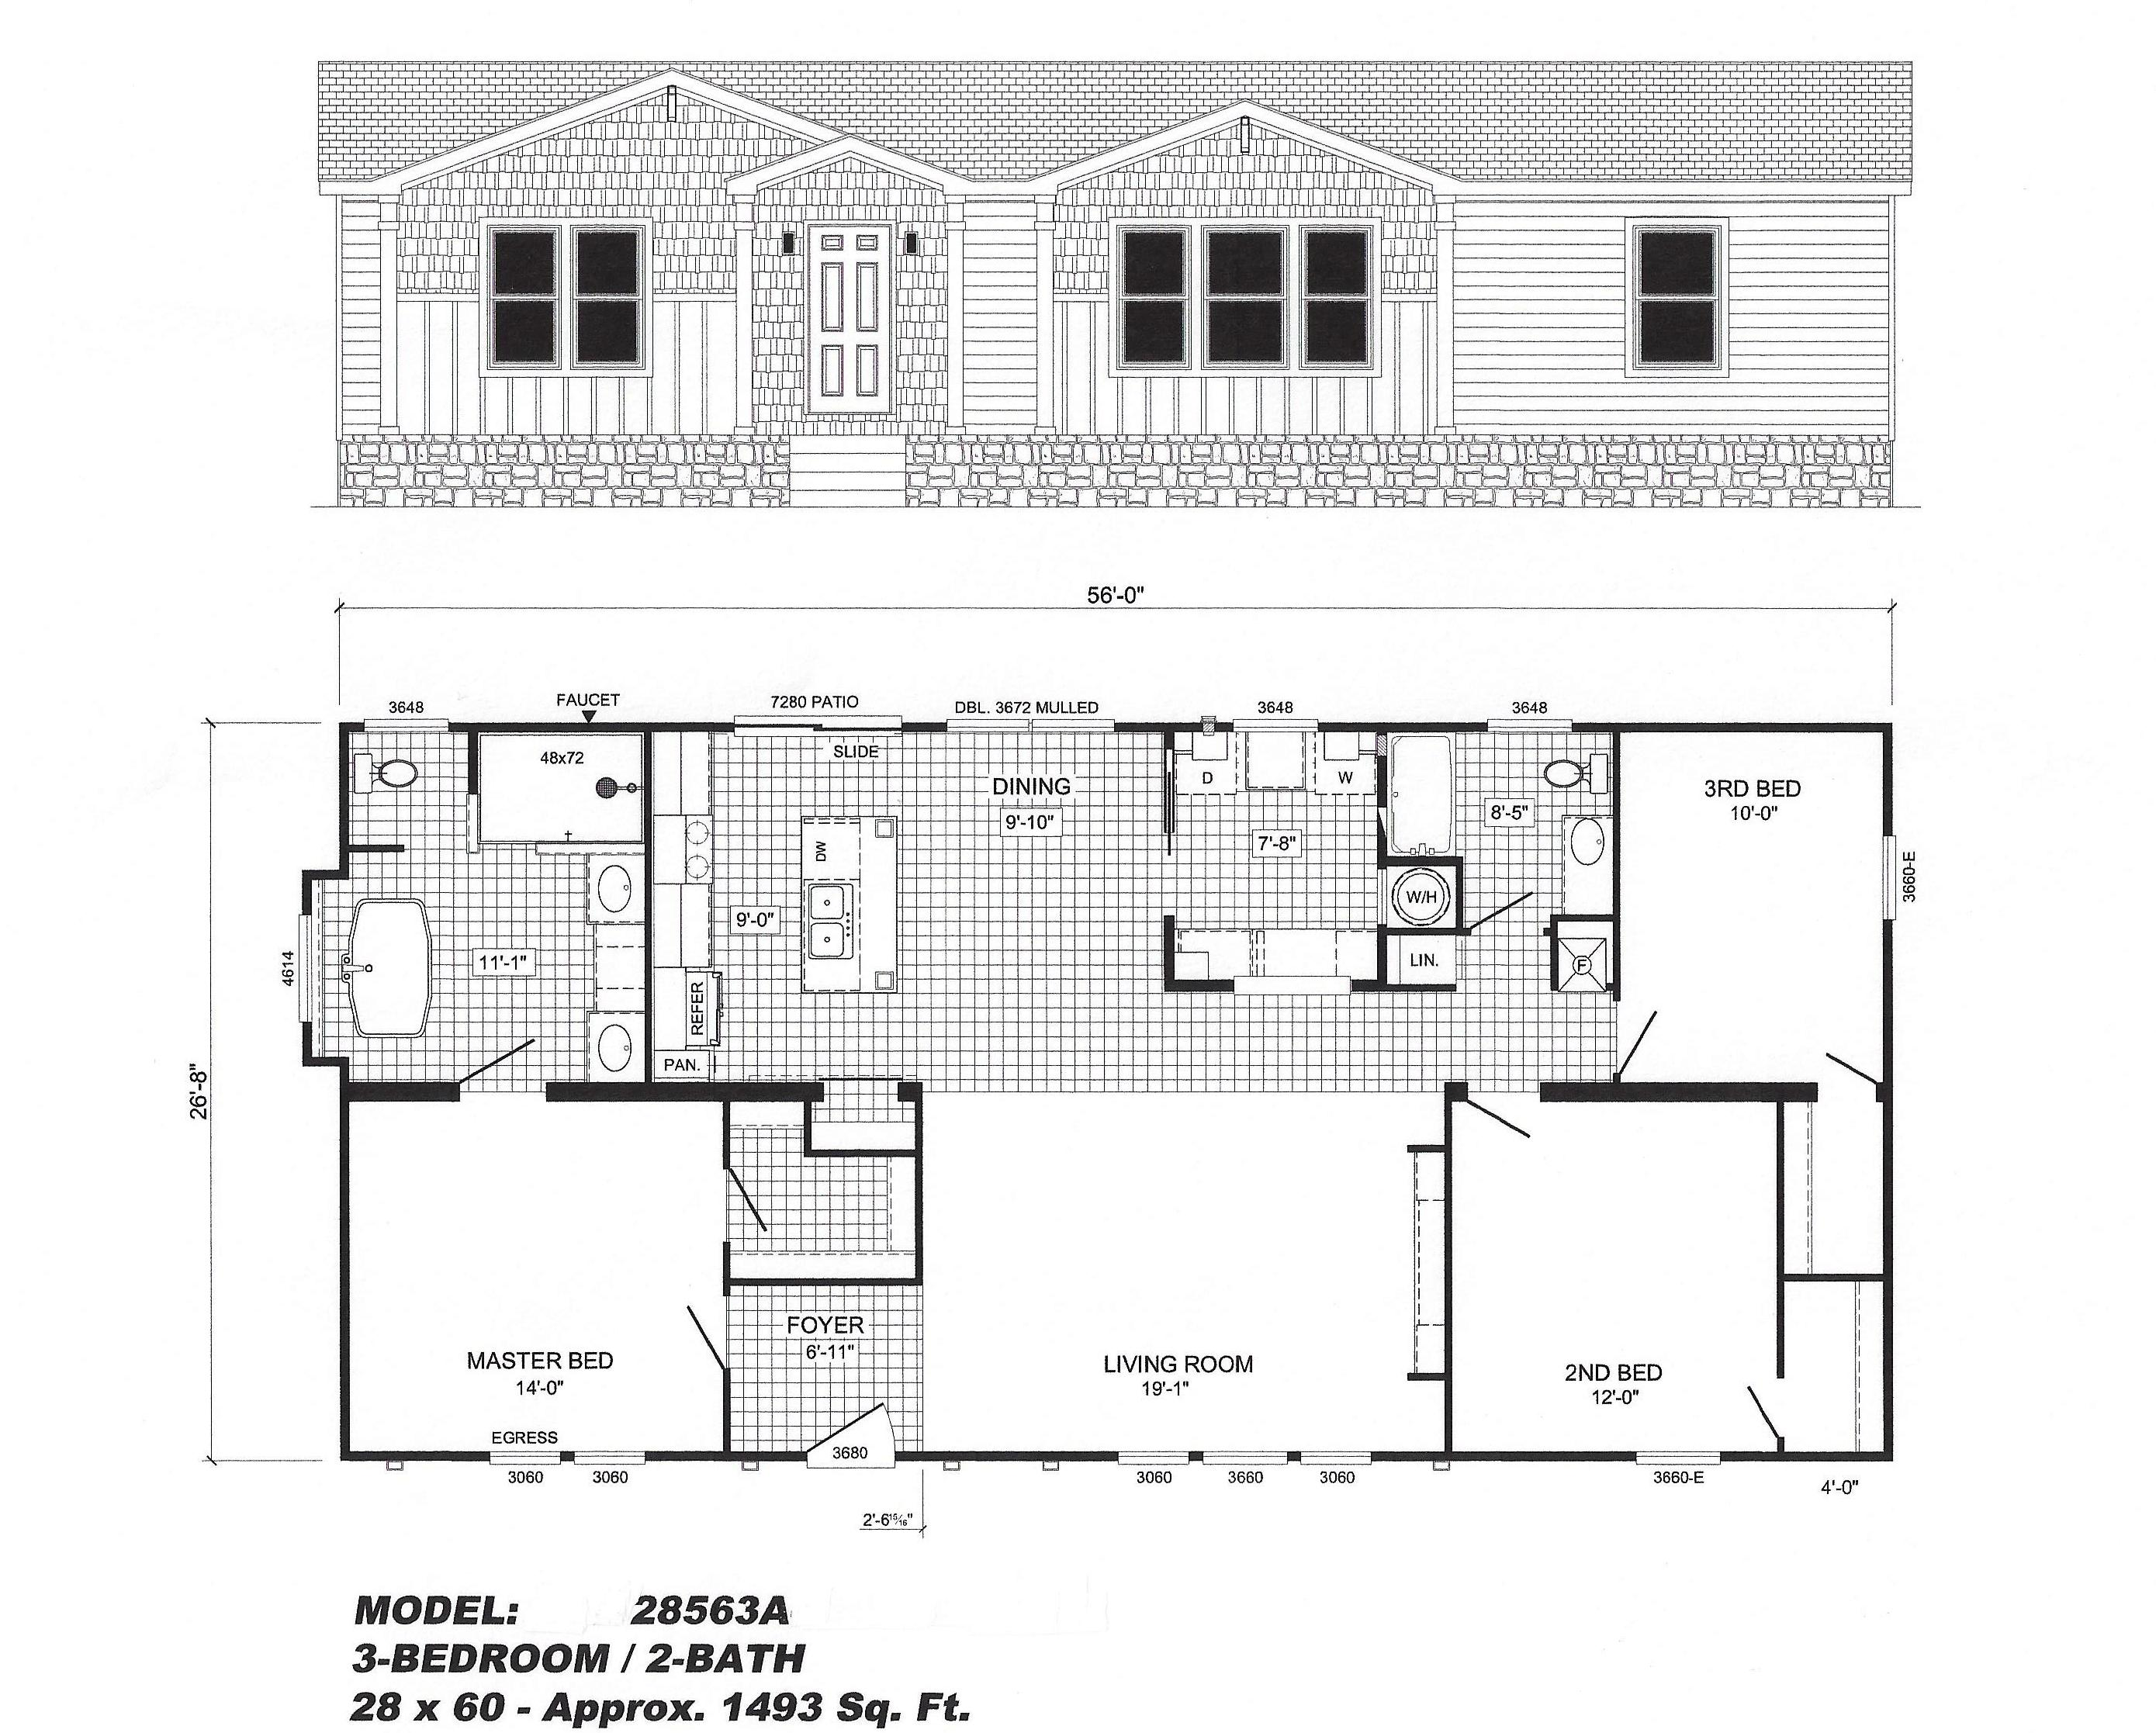 3 bedroom floor plan b 2856 pat hawks homes for 2 bedroom mobile home floor plans